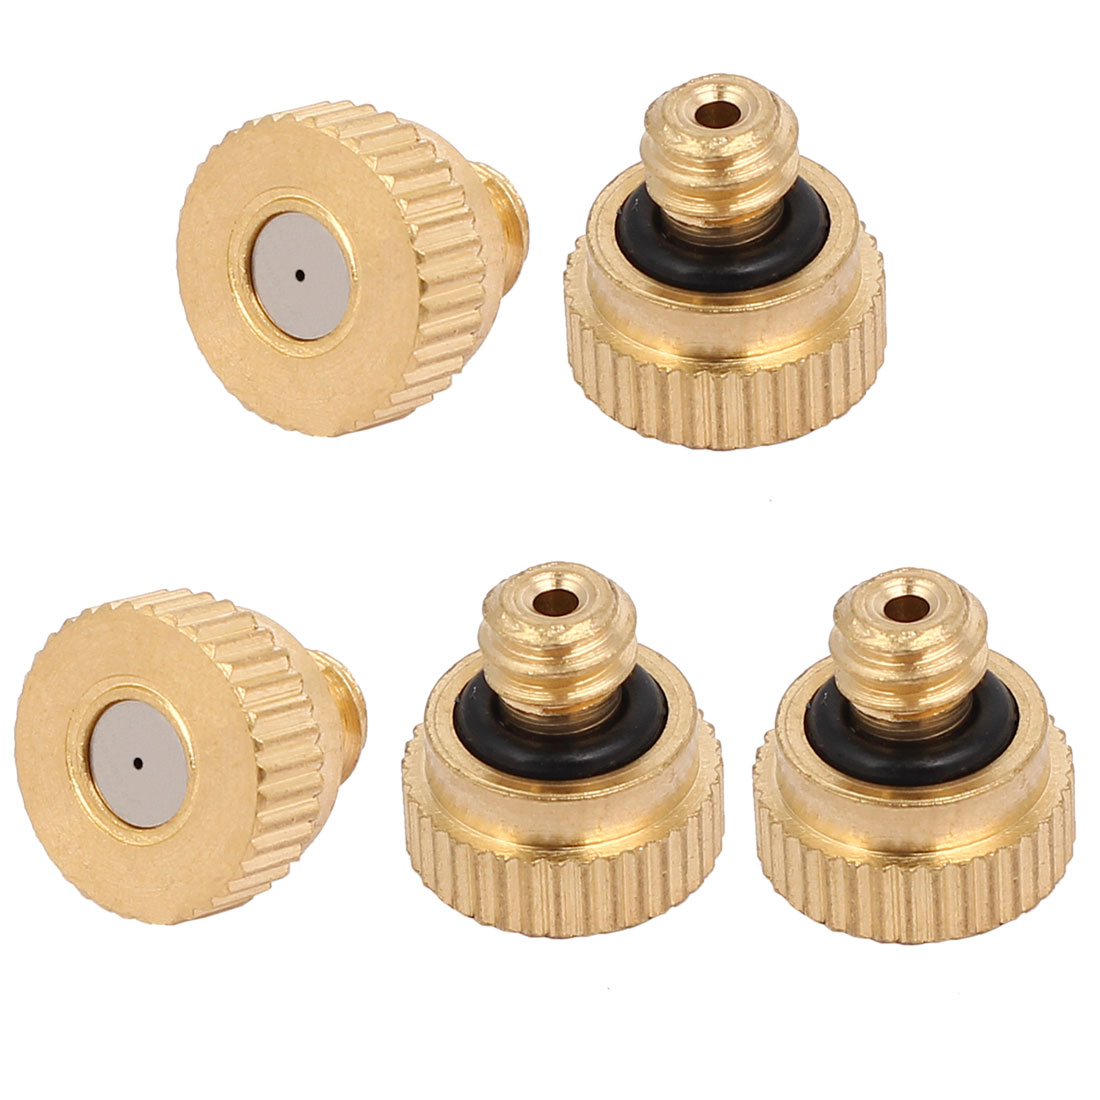 0.4mm Orifice Dia 9mm Long Brass Mist Nozzle Gold Tone 5pcs